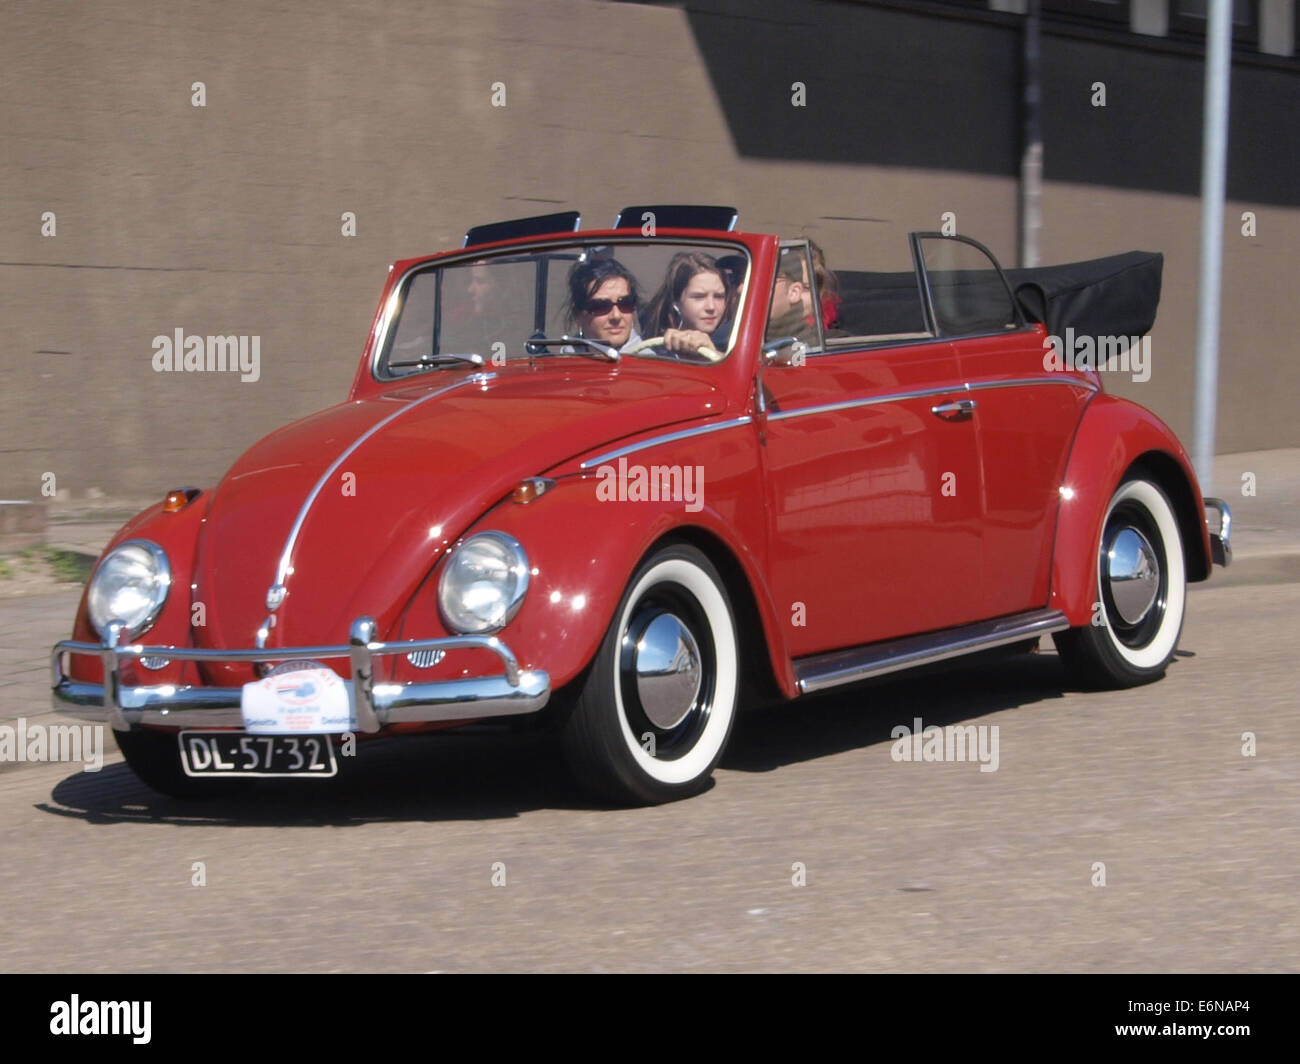 1960 Red Volkswagen Kever cabrio, licenceno DL-57-32, pic1 - Stock Image